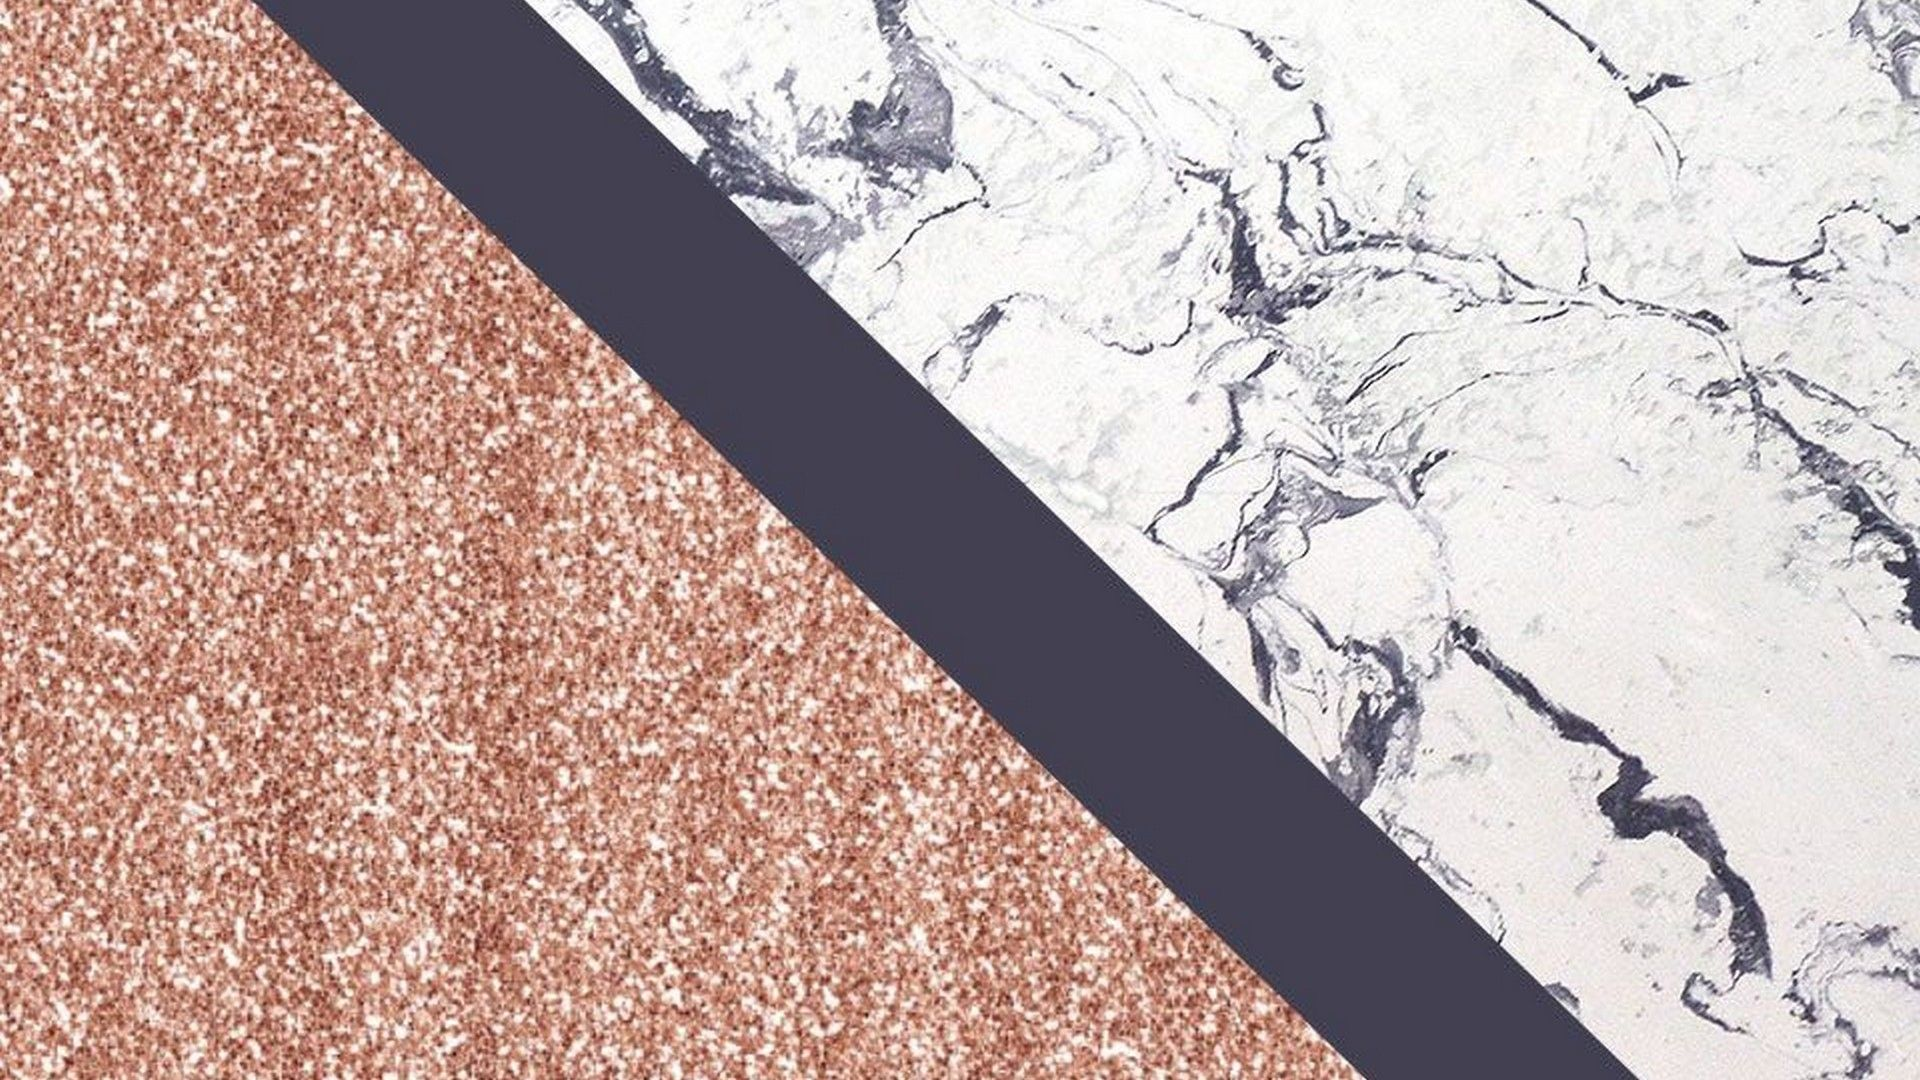 Rose gold marble desktop backgrounds hd best hd - Hd wallpaper for laptop 14 inch ...